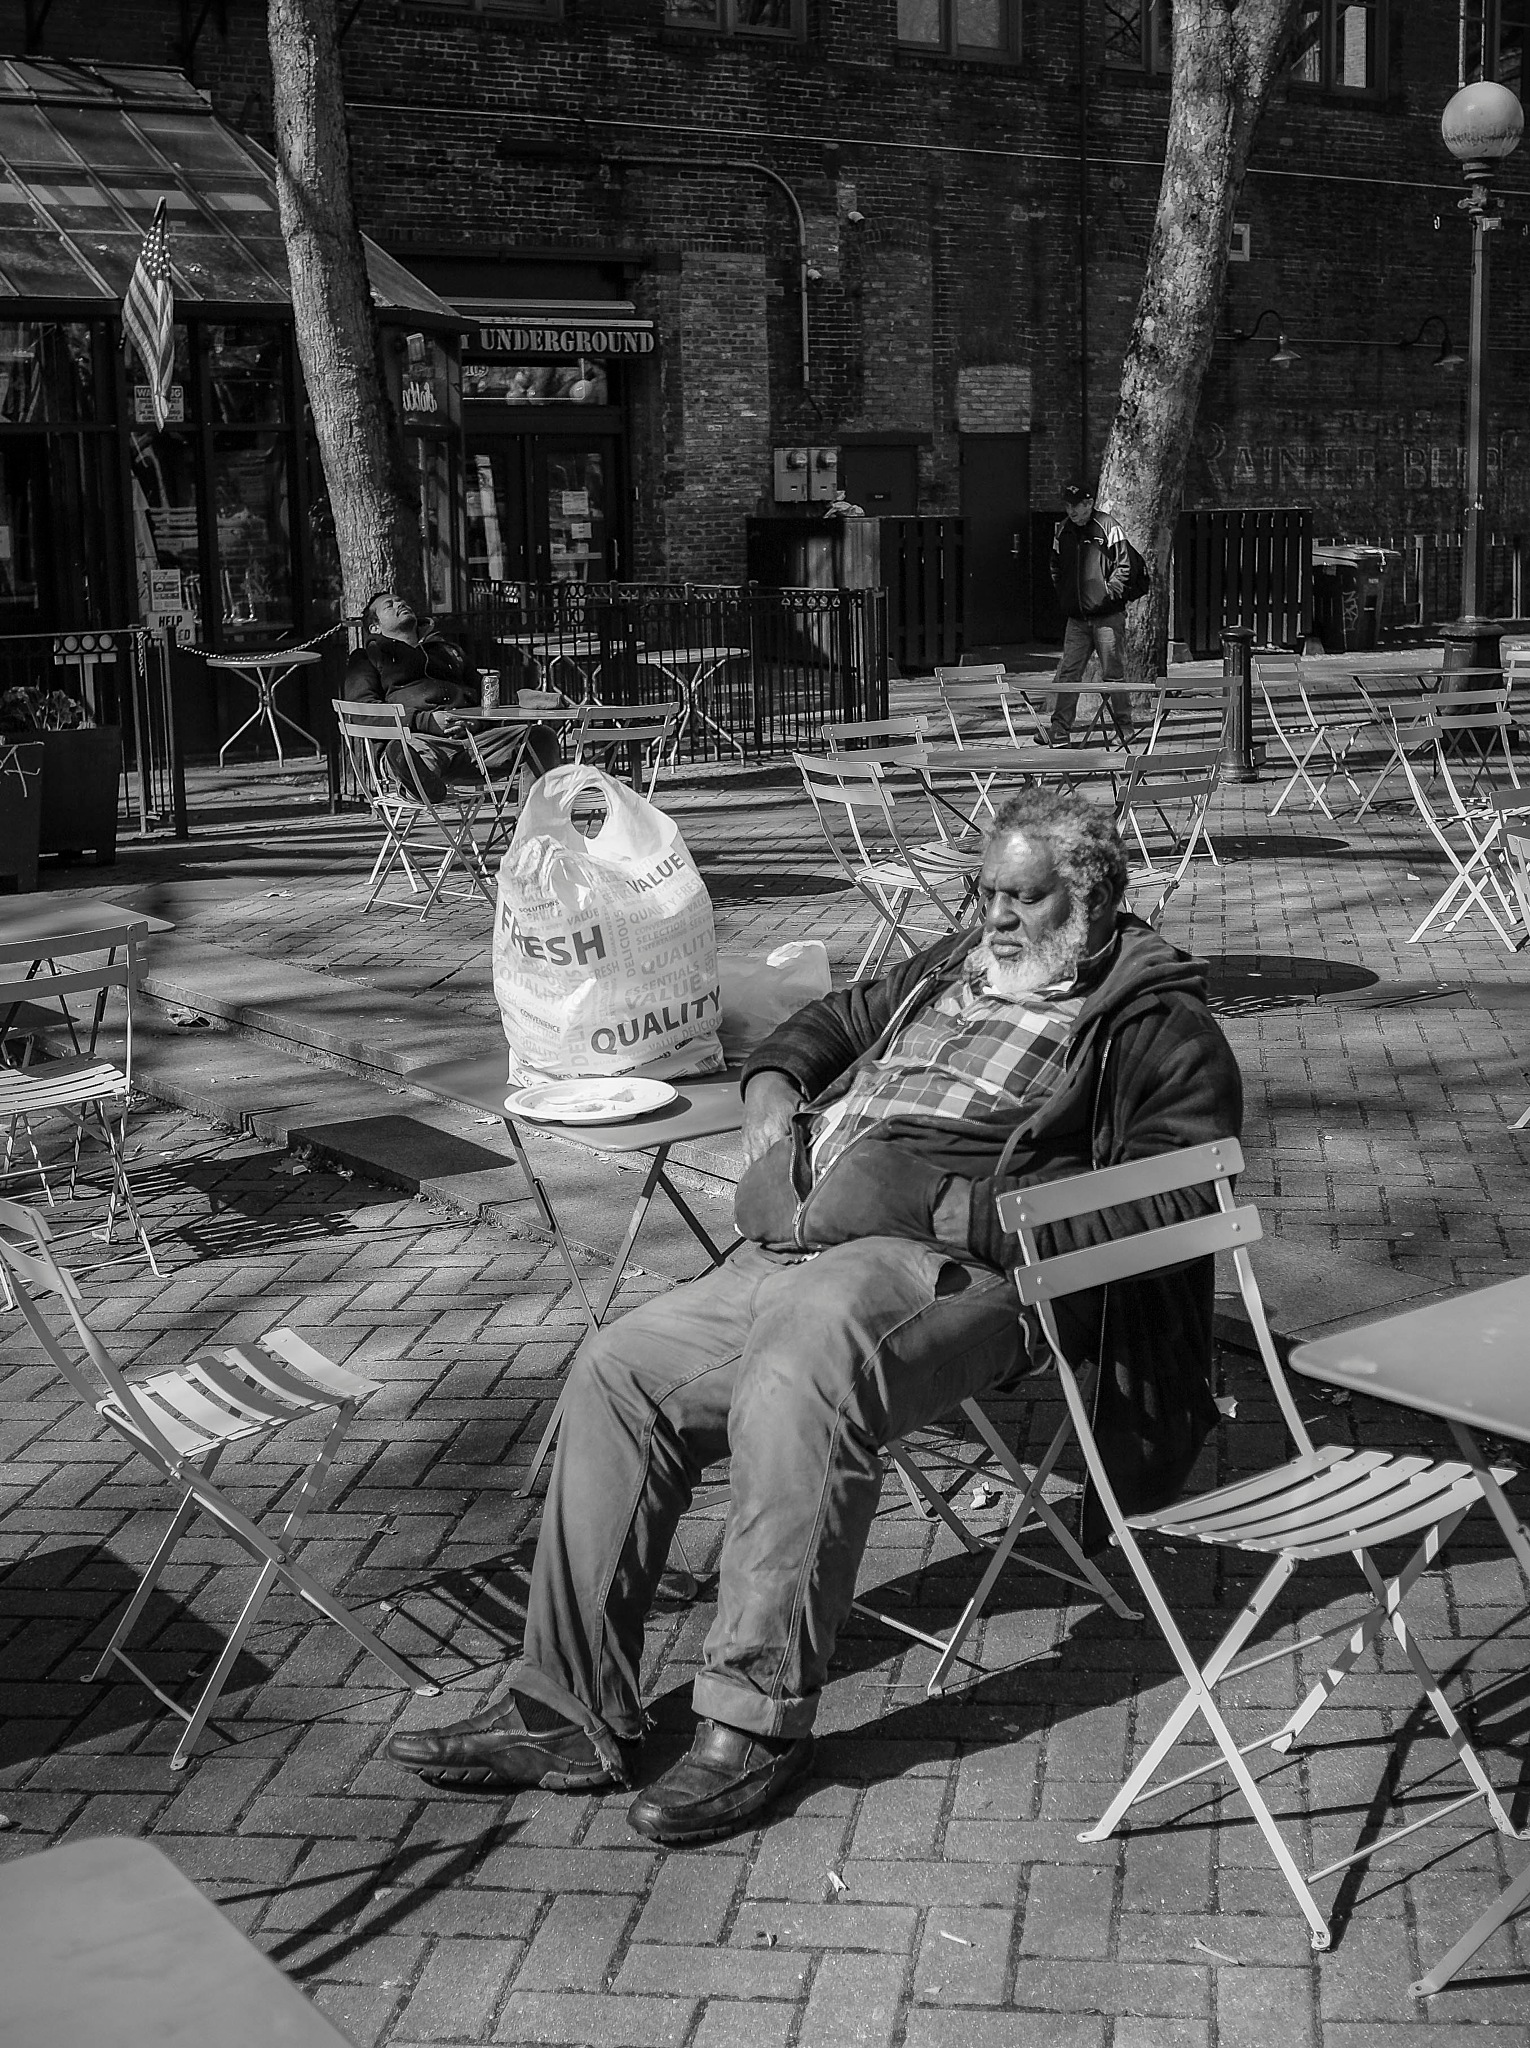 napping in Pioneer Square by nathan.mangold.5